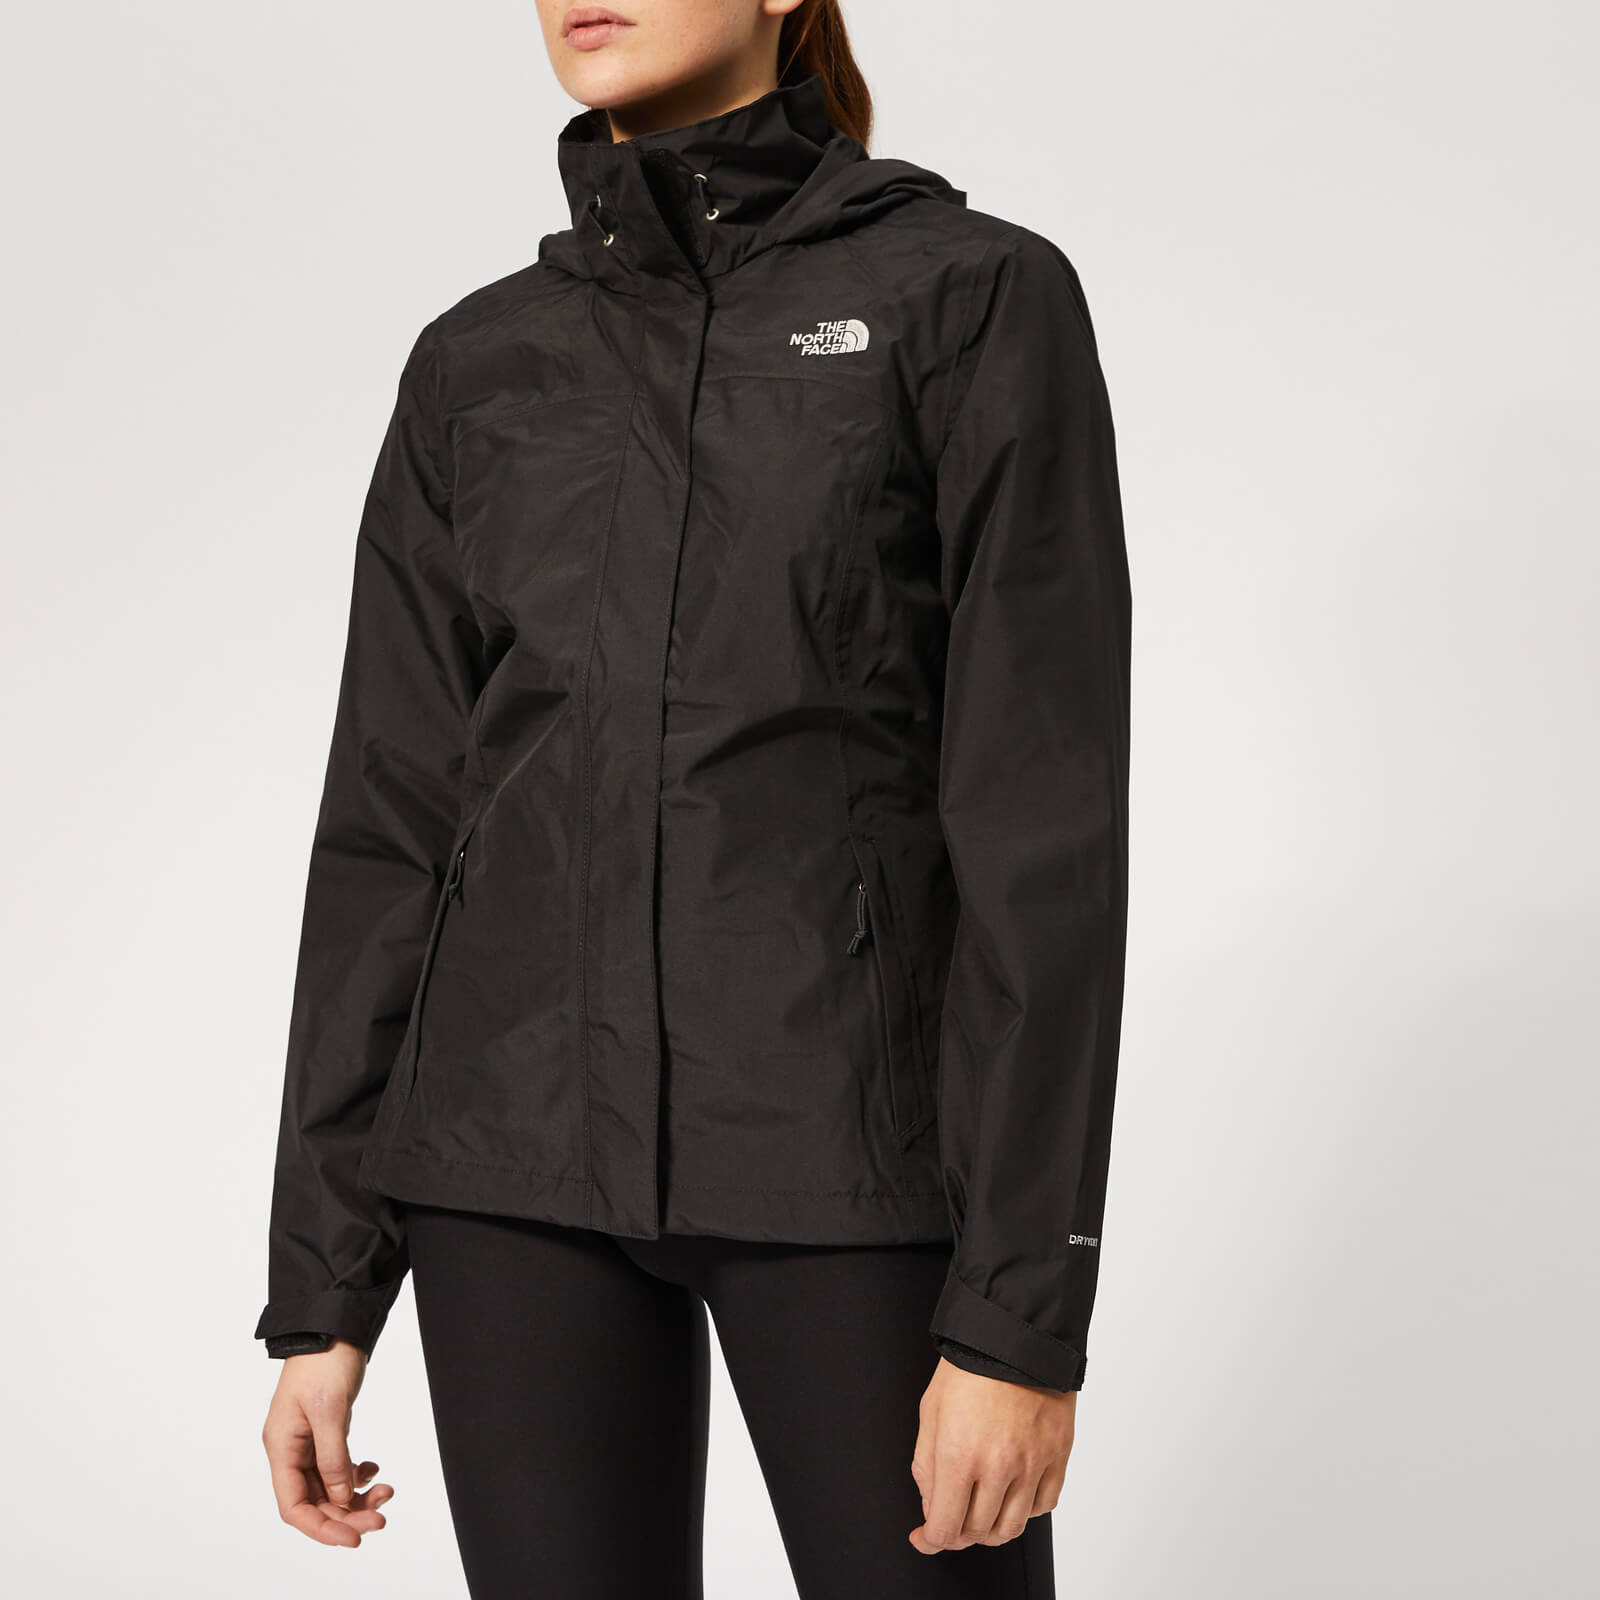 wide selection of colors clients first retail prices The North Face Women's Sangro Jacket - TNF Black